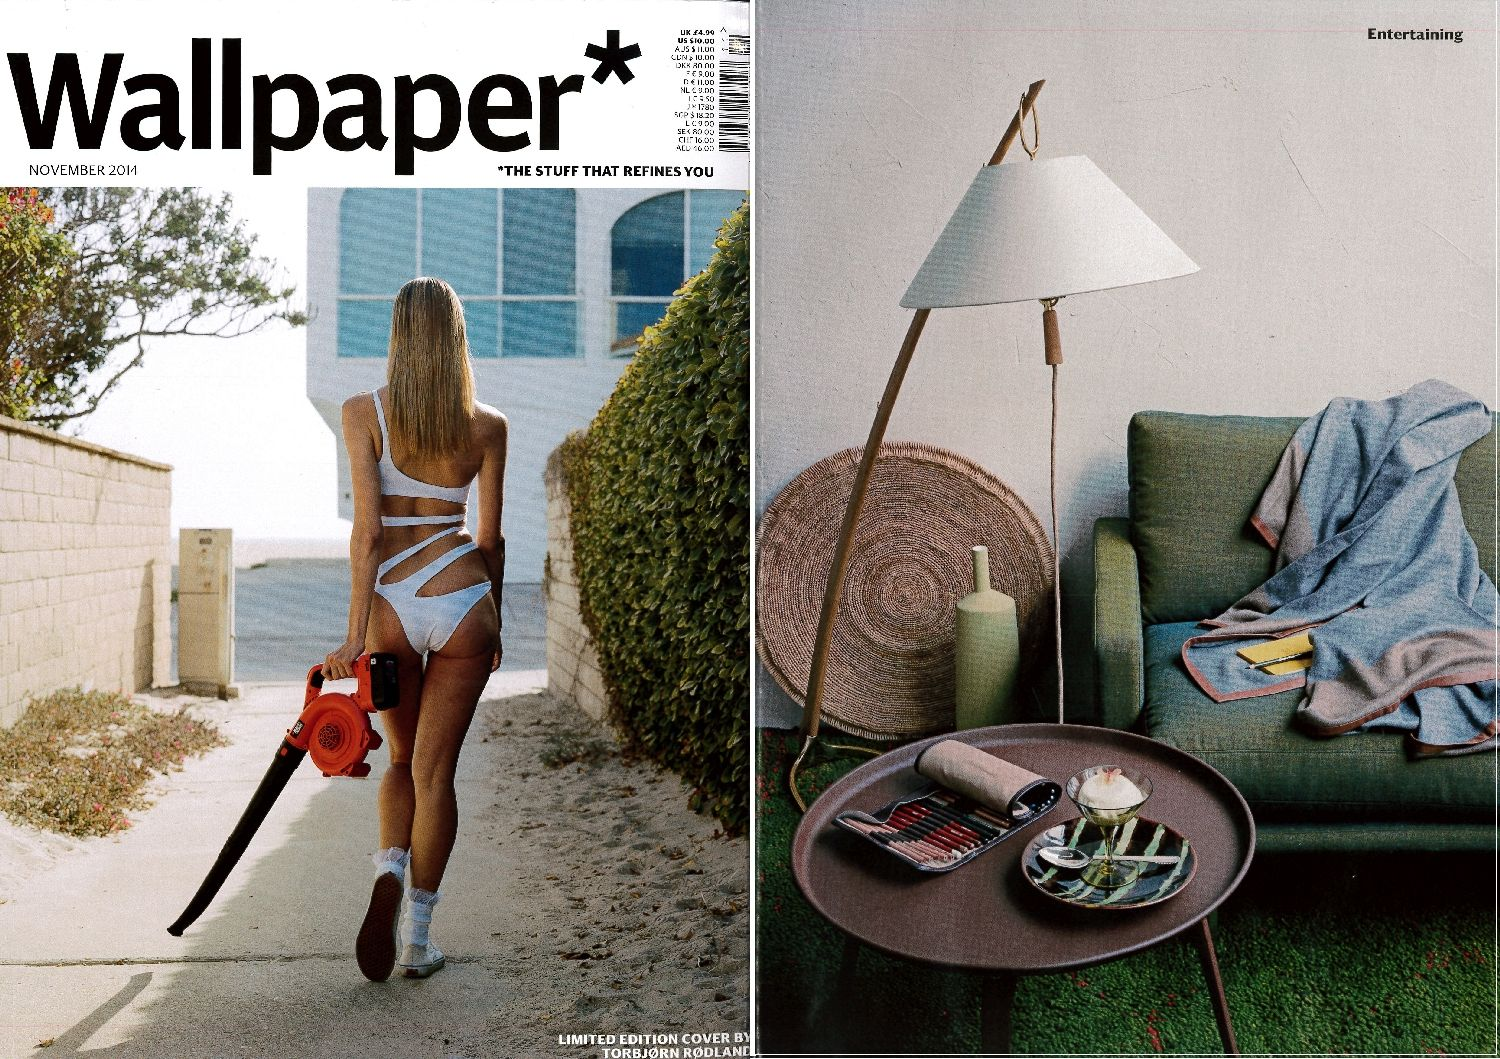 Wallpaper* Magazine_November issue 2014_featuring the Dornstab floor lamp http://werkstaetten.kalmarlighting.com/page.php?s=products&p=product&pSez=0&pPro=1&pName=dornstab in oak and polished brass